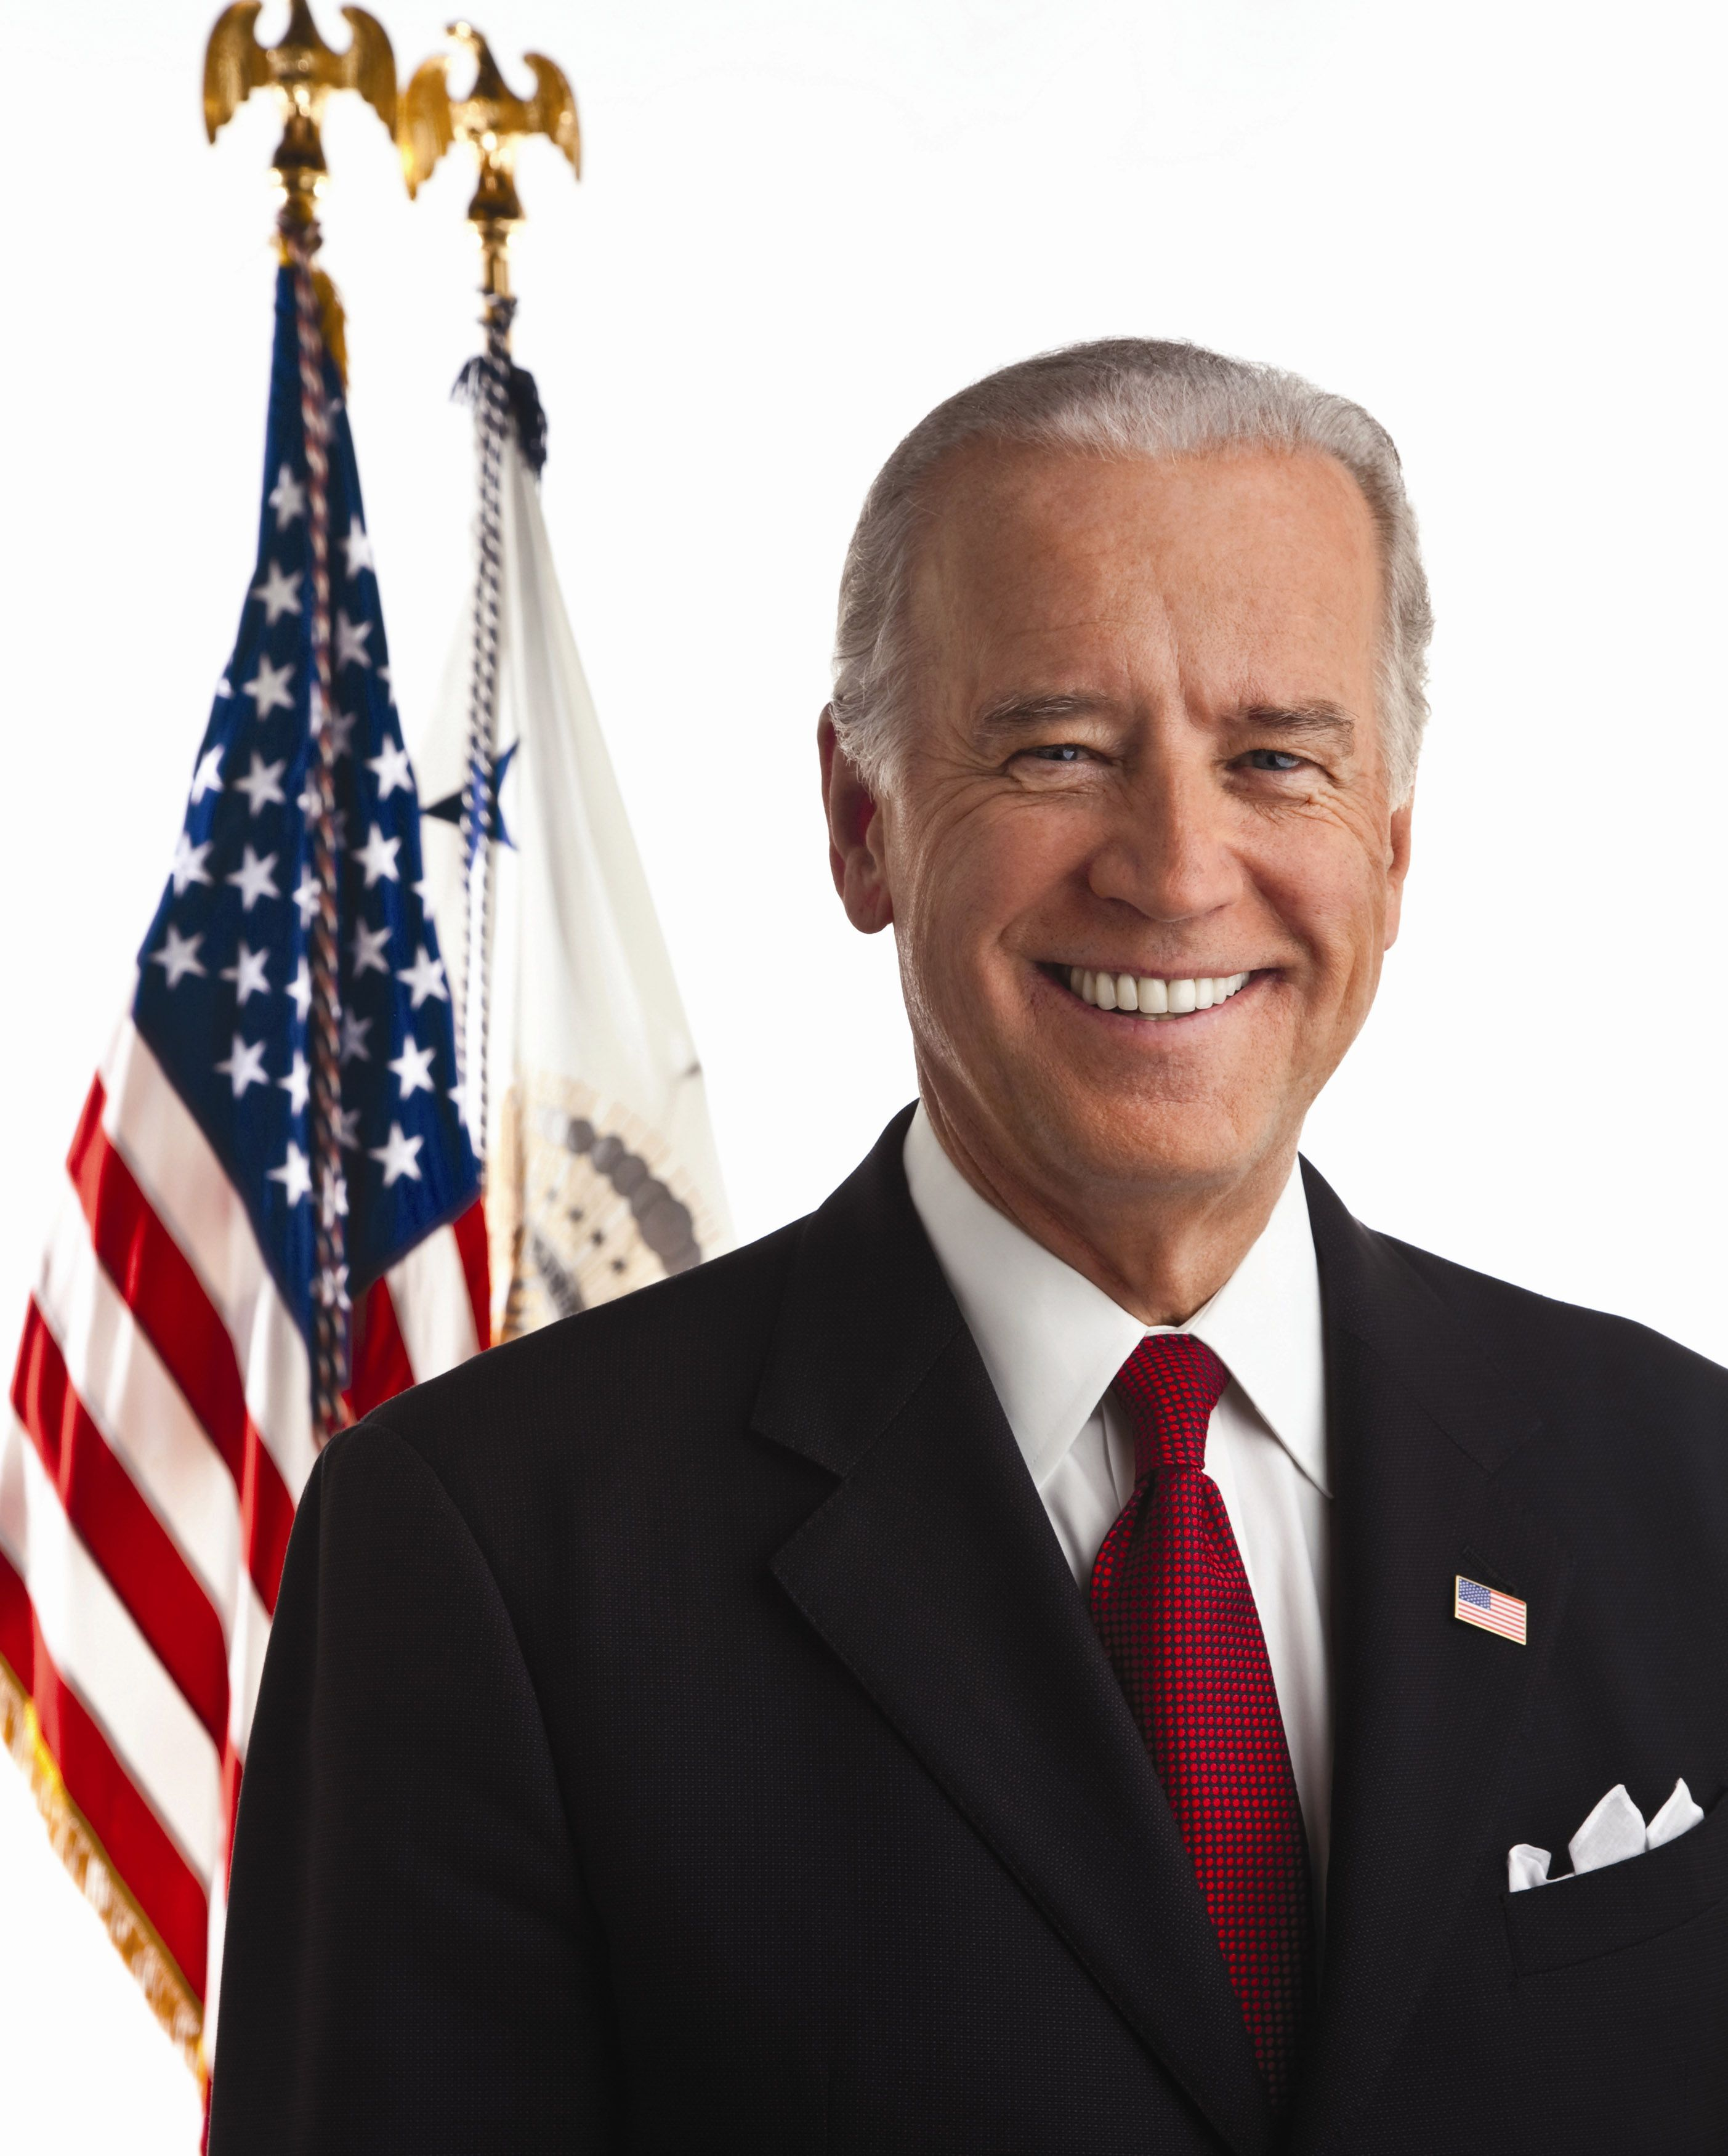 Pin by E L Young on Wisdom of Life in 2019 | Joe biden